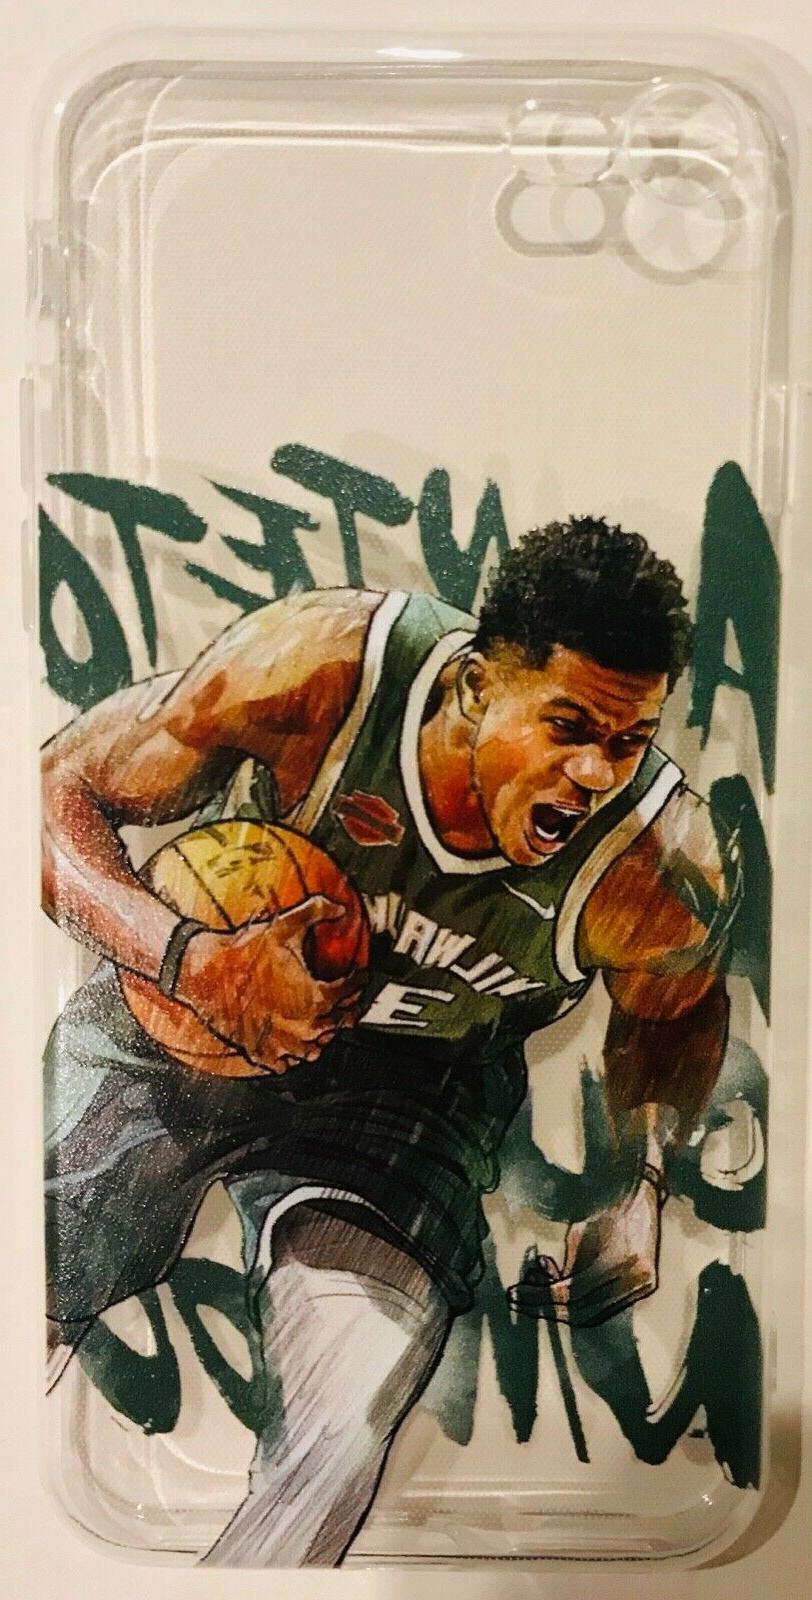 Giannis Milwaukee iPhone XR/XS/X/8/7/6s/6 Phone Case Cover